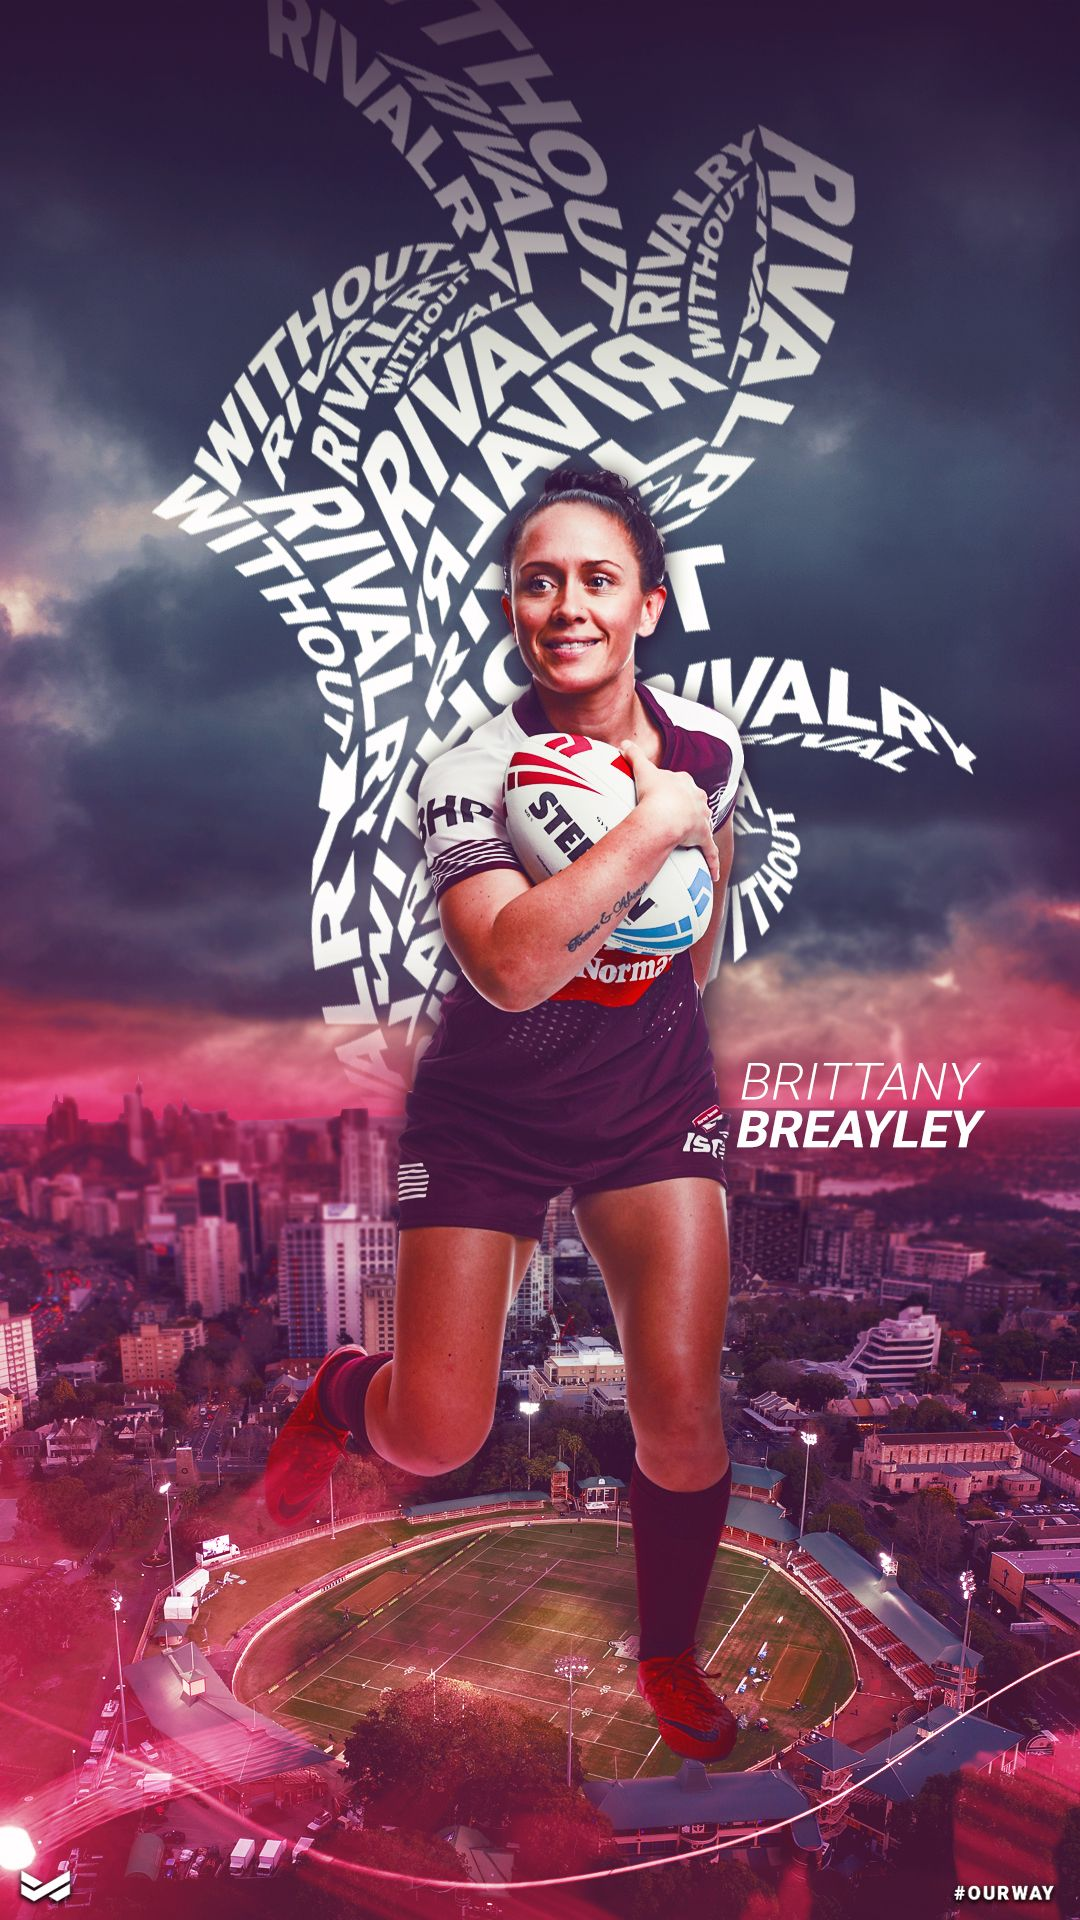 Wallpaper Women S Rugby League Brittany Breayley Rugby League Rugby Women